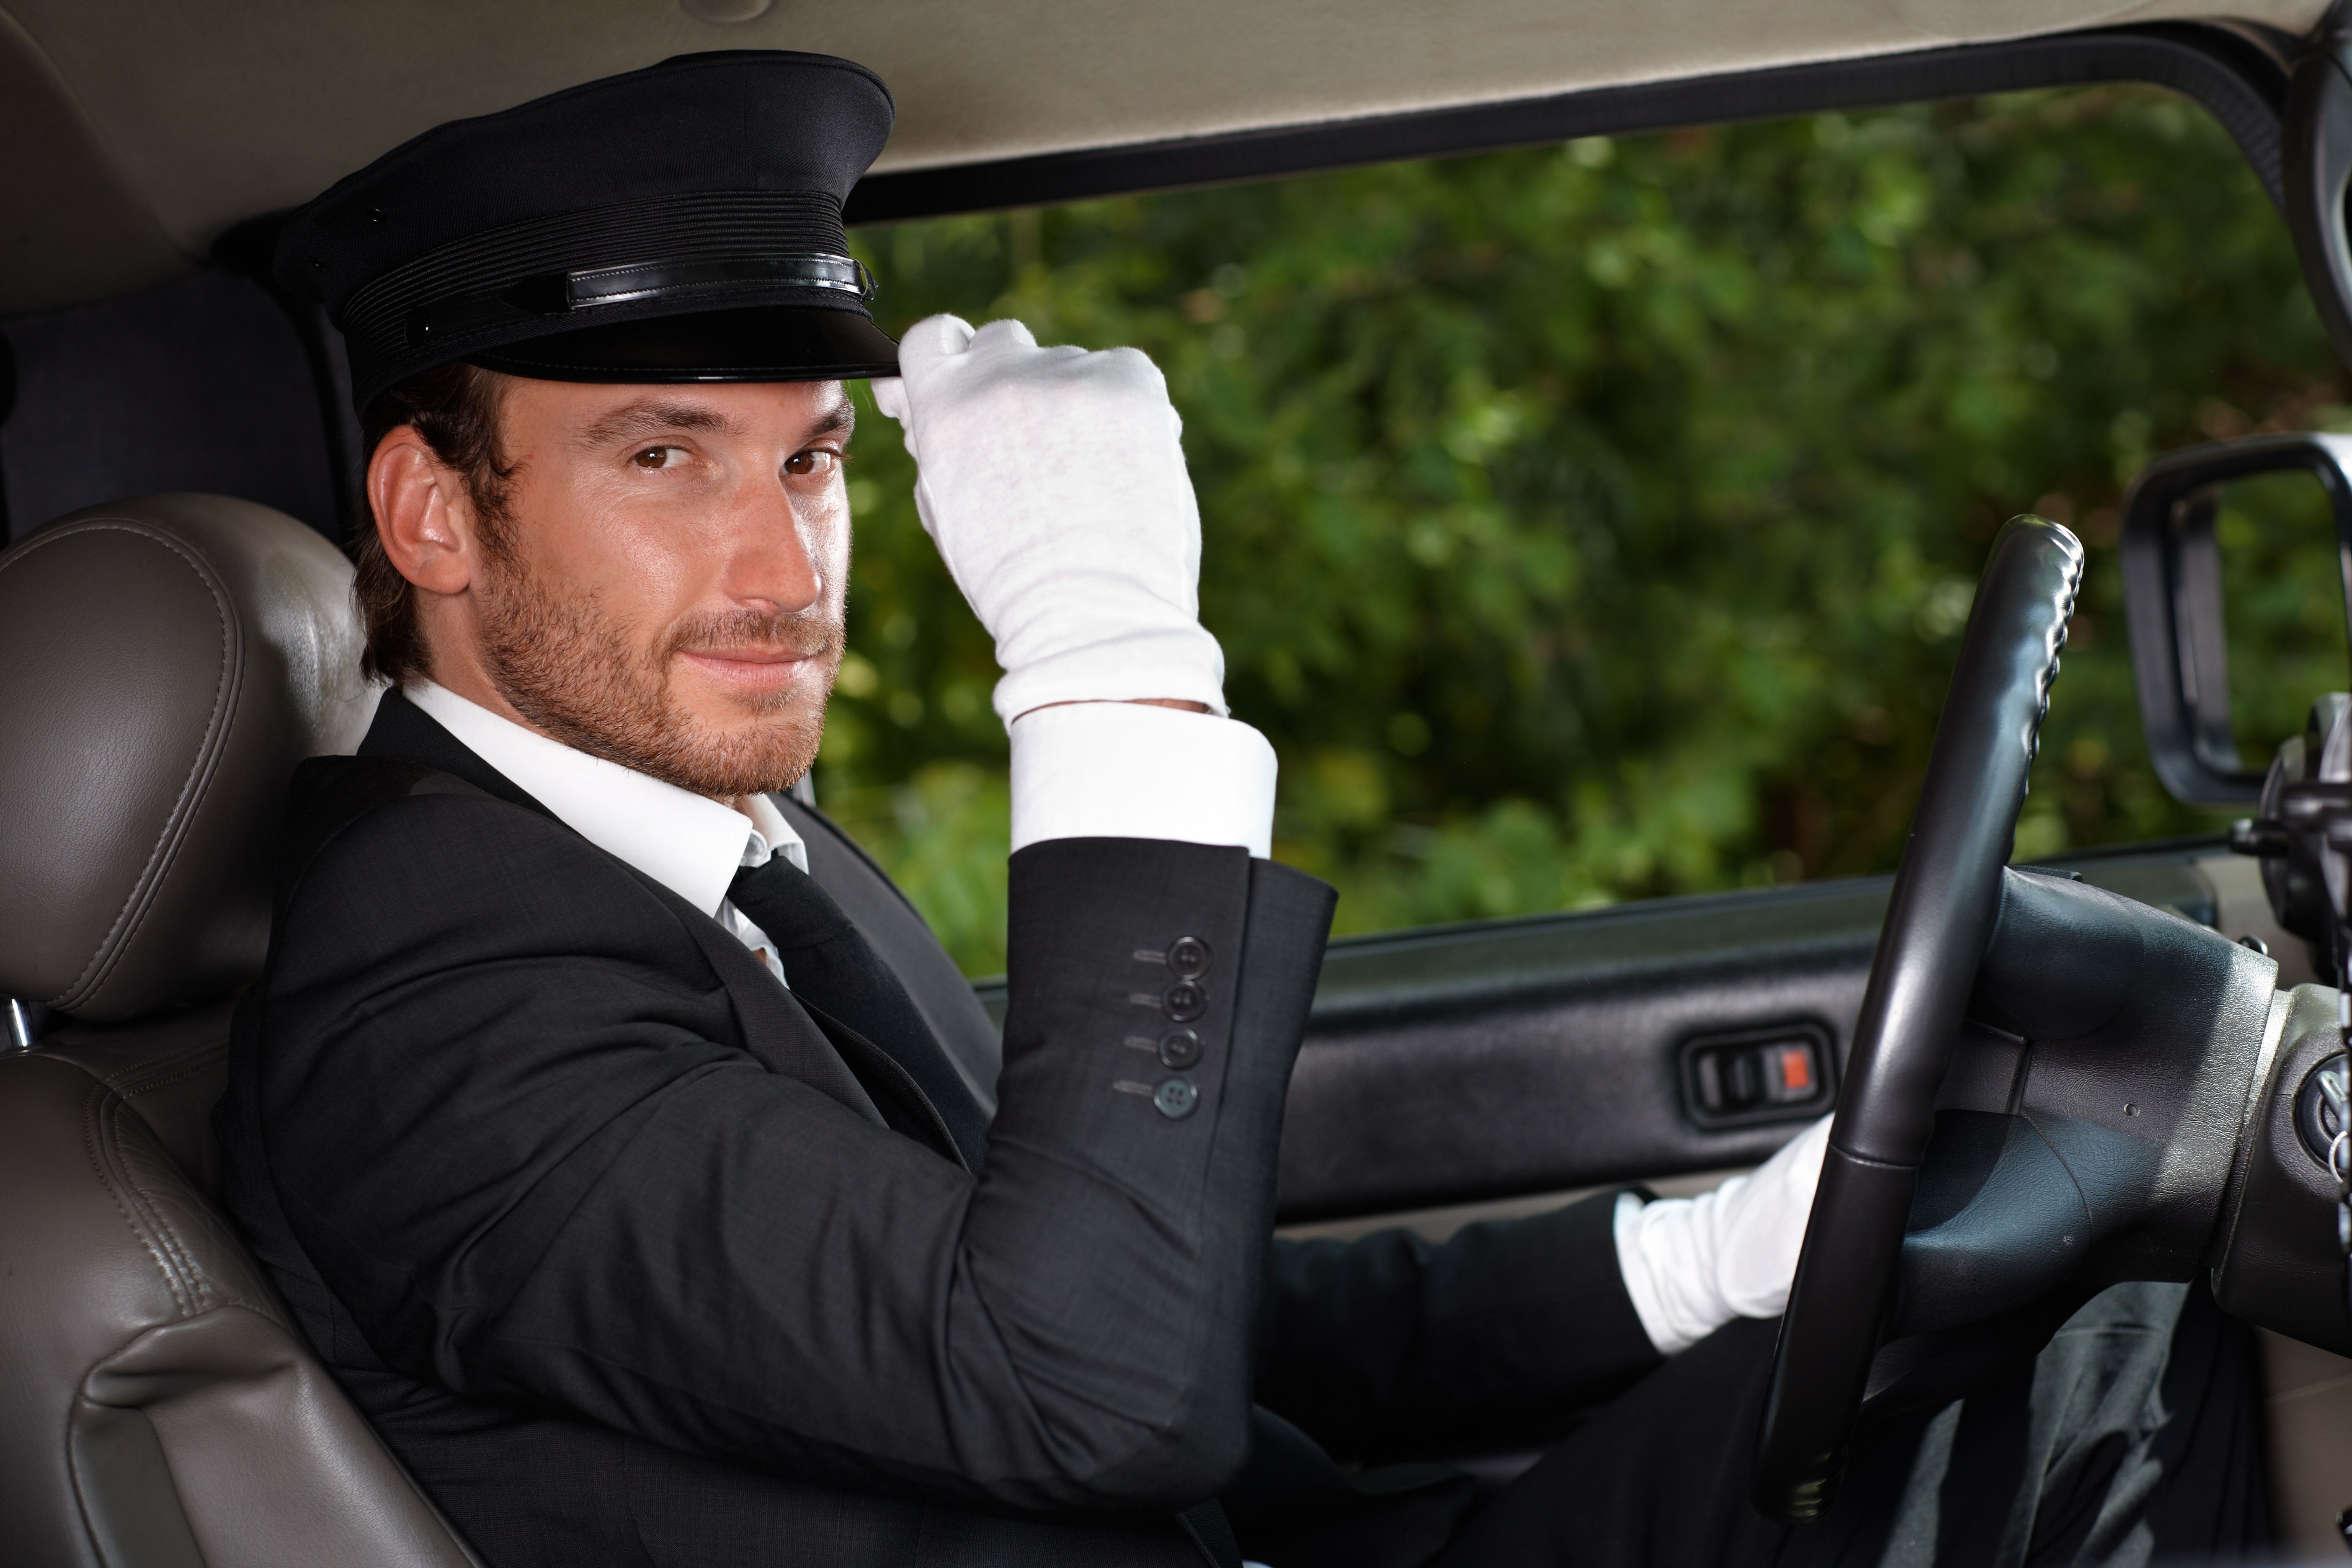 Book your professional driver from sf best limousine via